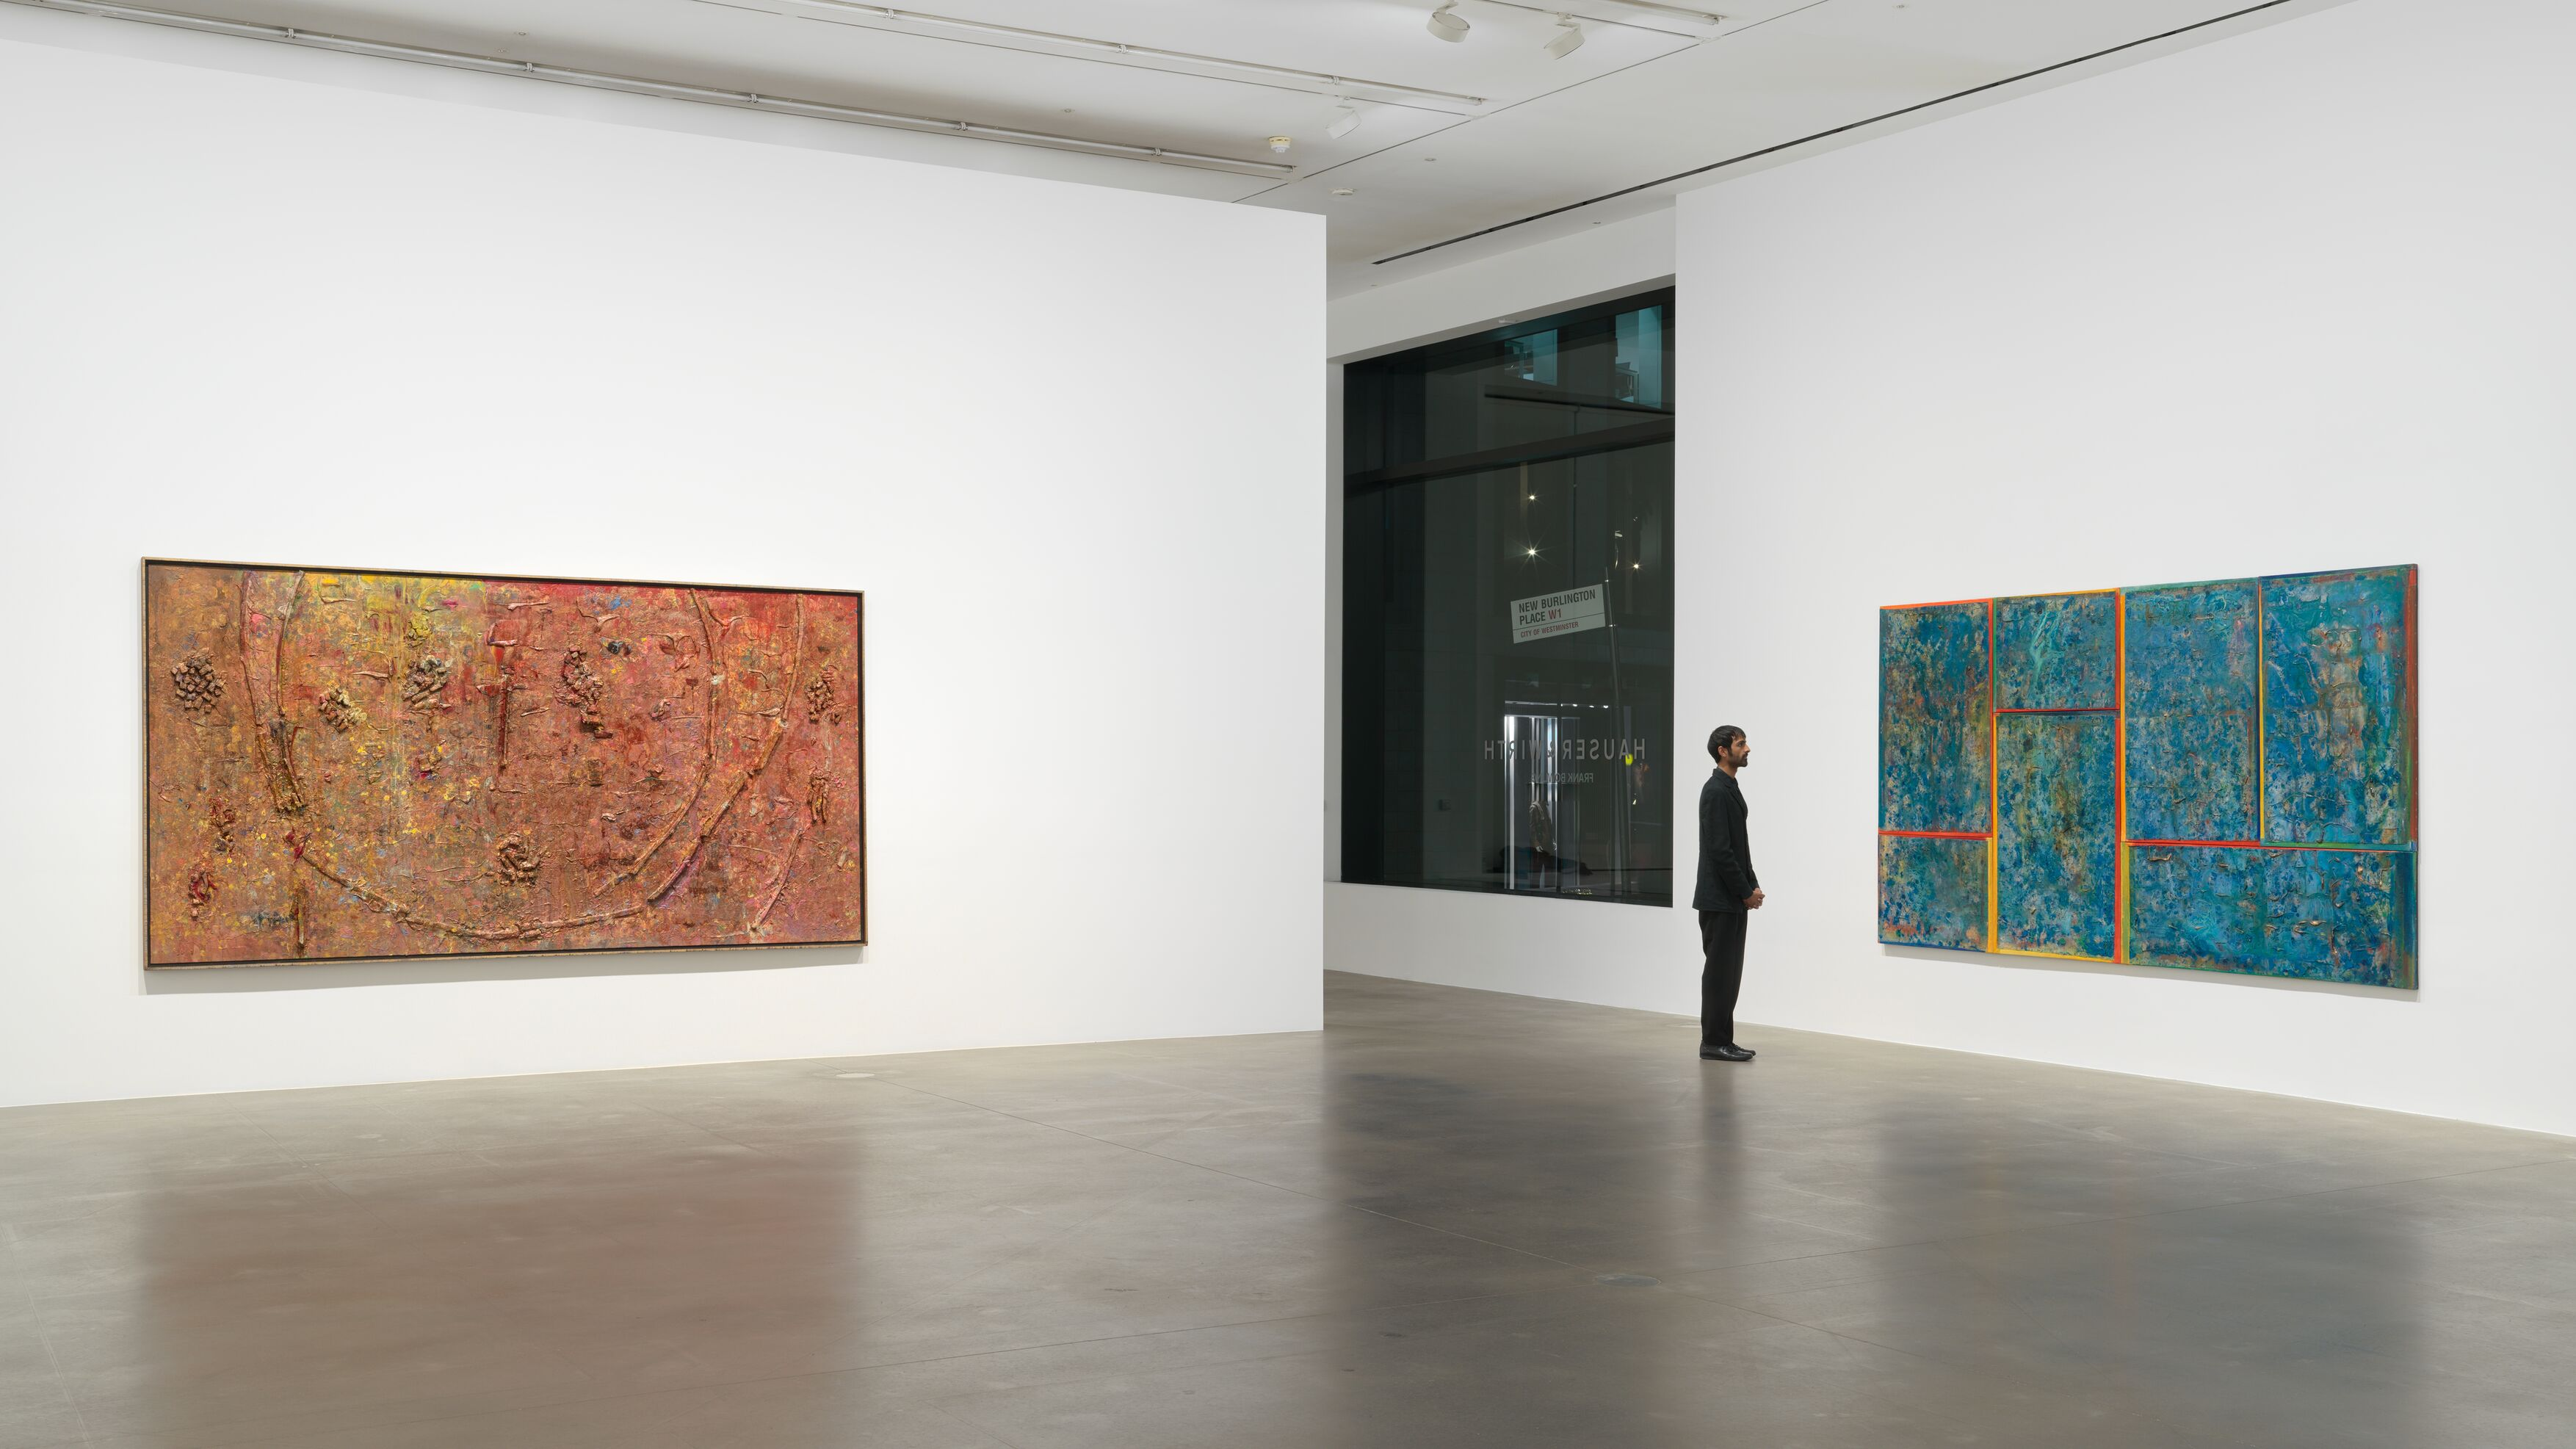 Installation view: Frank Bowling – London / New York, Hauser & Wirth, 21 May - 31 July 2021.Photo: Alex Delfanne, Courtesy the artist and Hauser & Wirth.